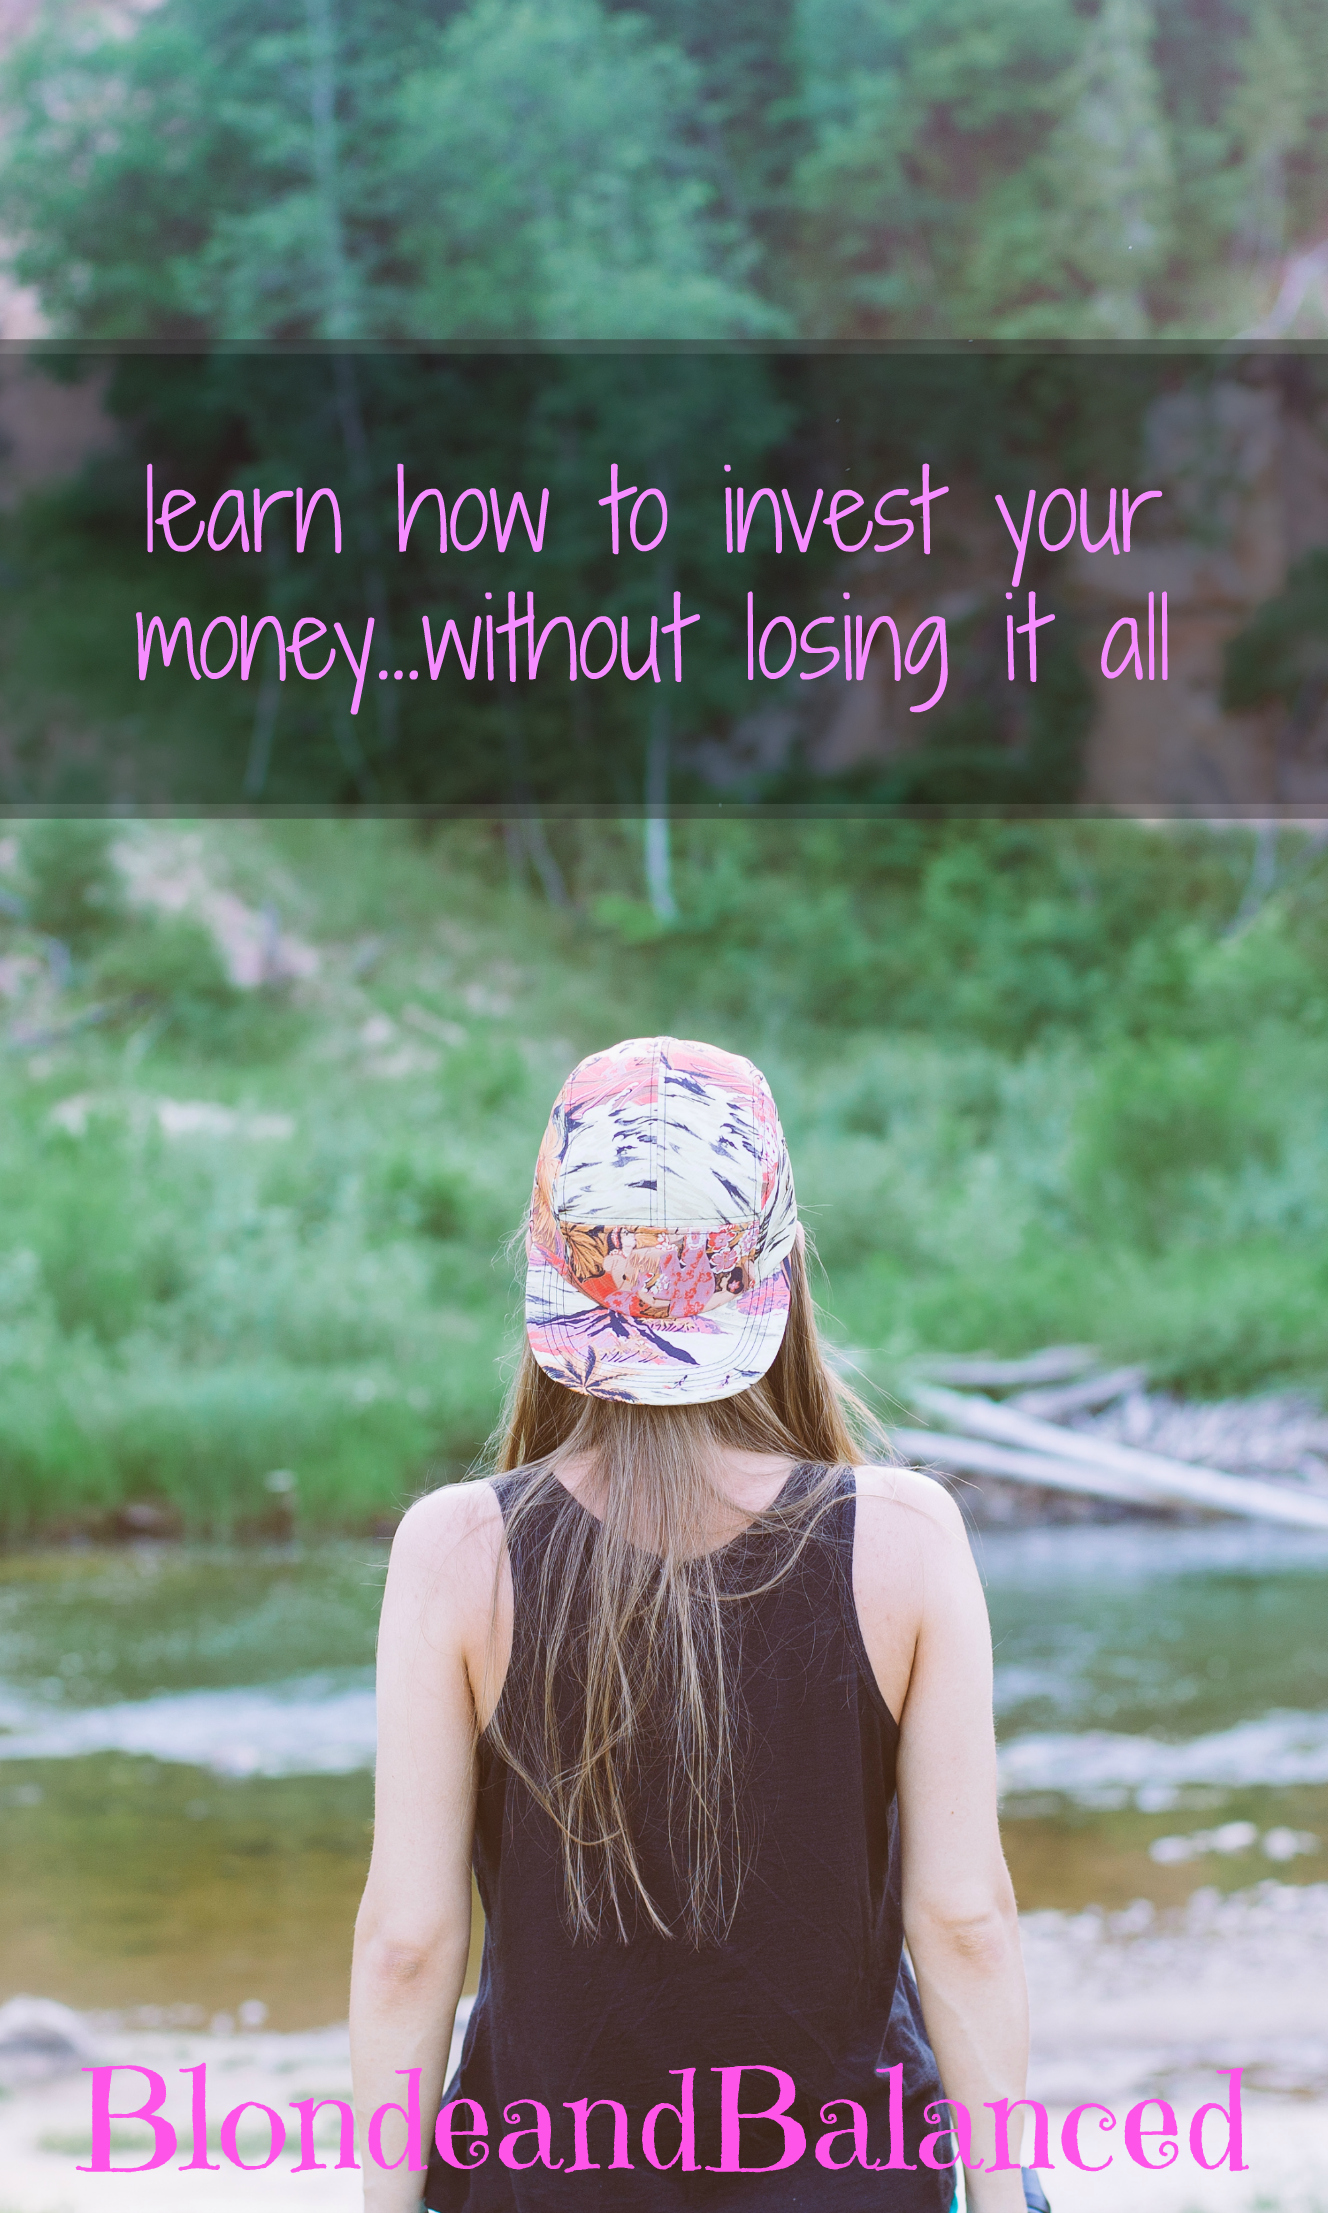 Learn to invest money